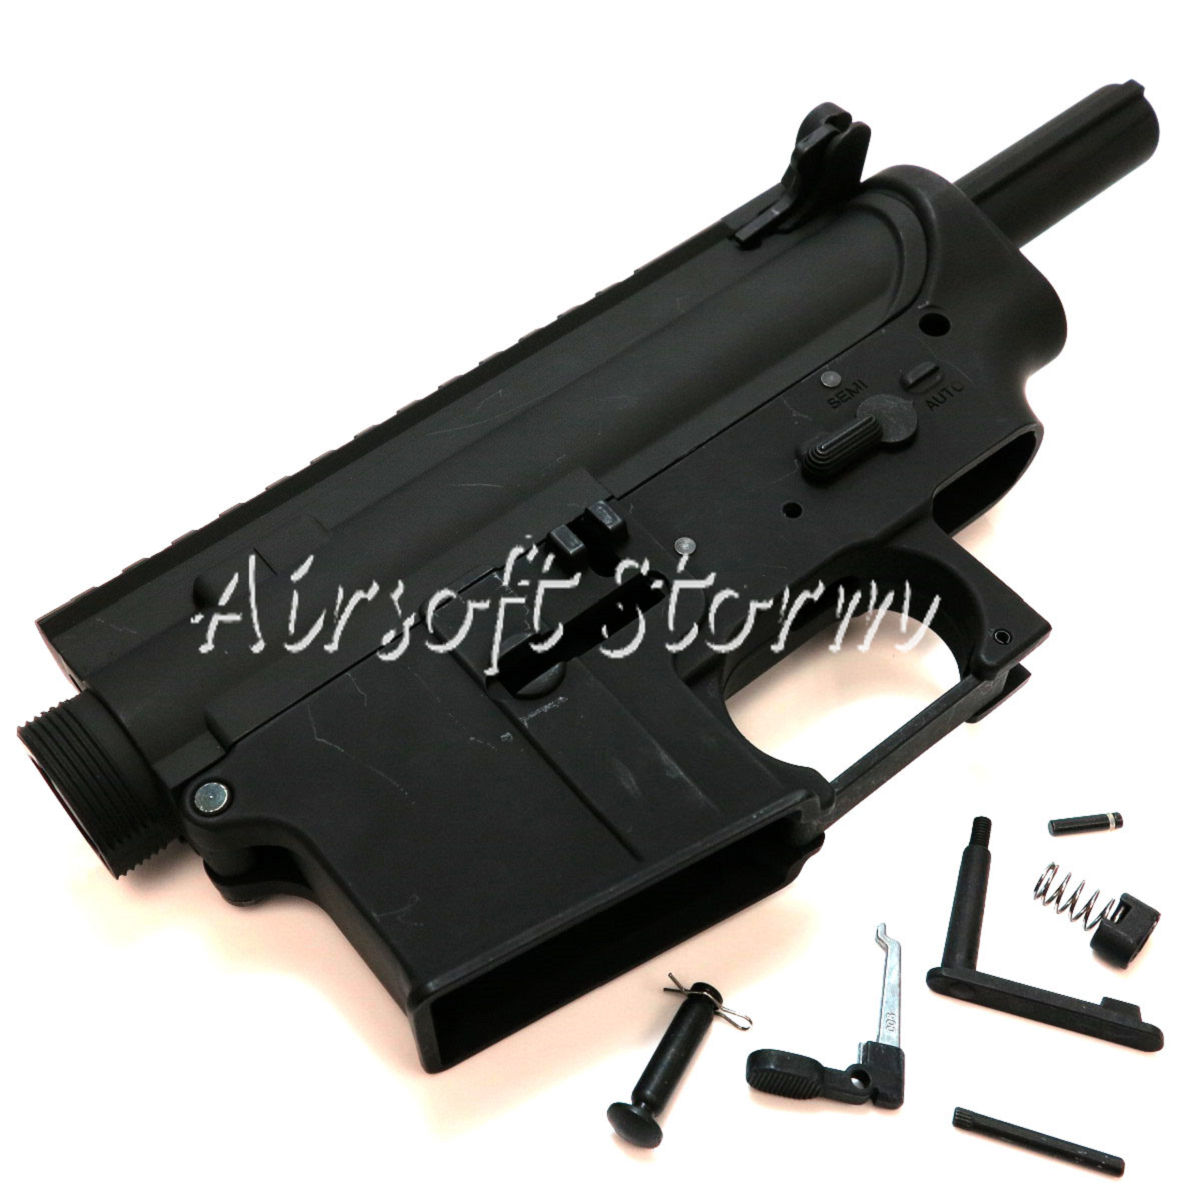 AEG Gear CYMA Metal Body Receiver for M4/M16 AEG (M058) - Click Image to Close